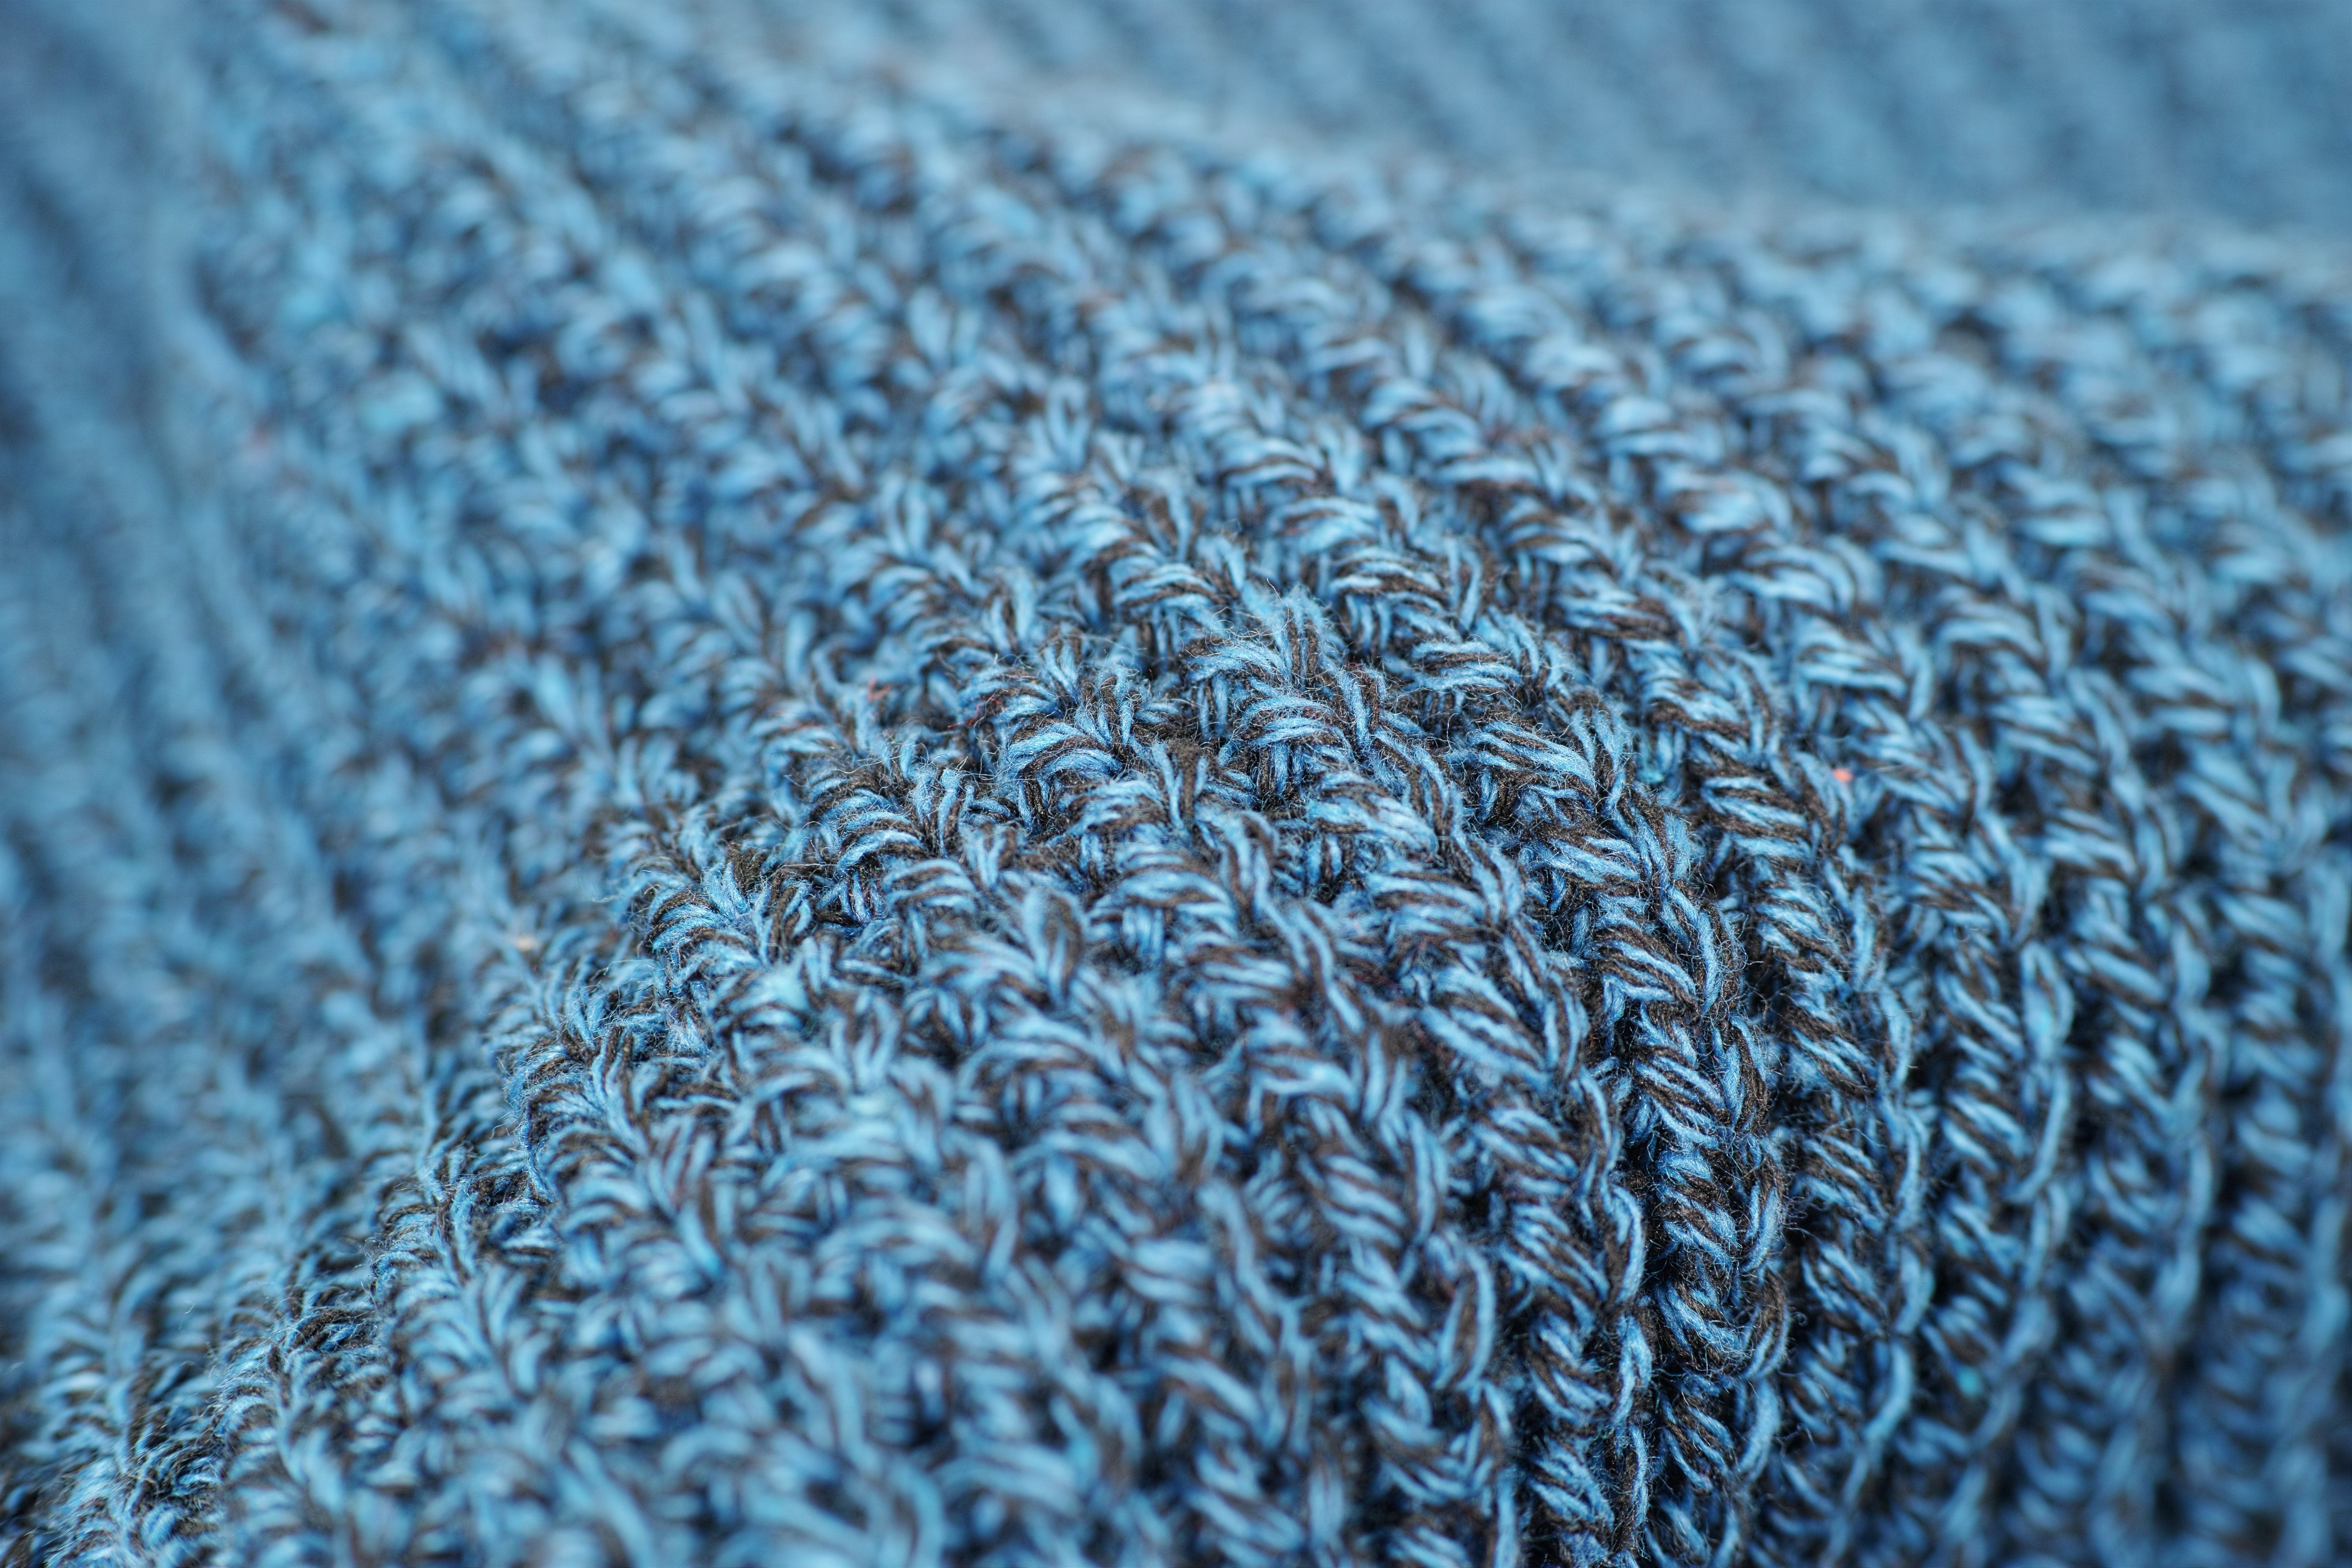 Close-up Photography of Gray Knit Textile